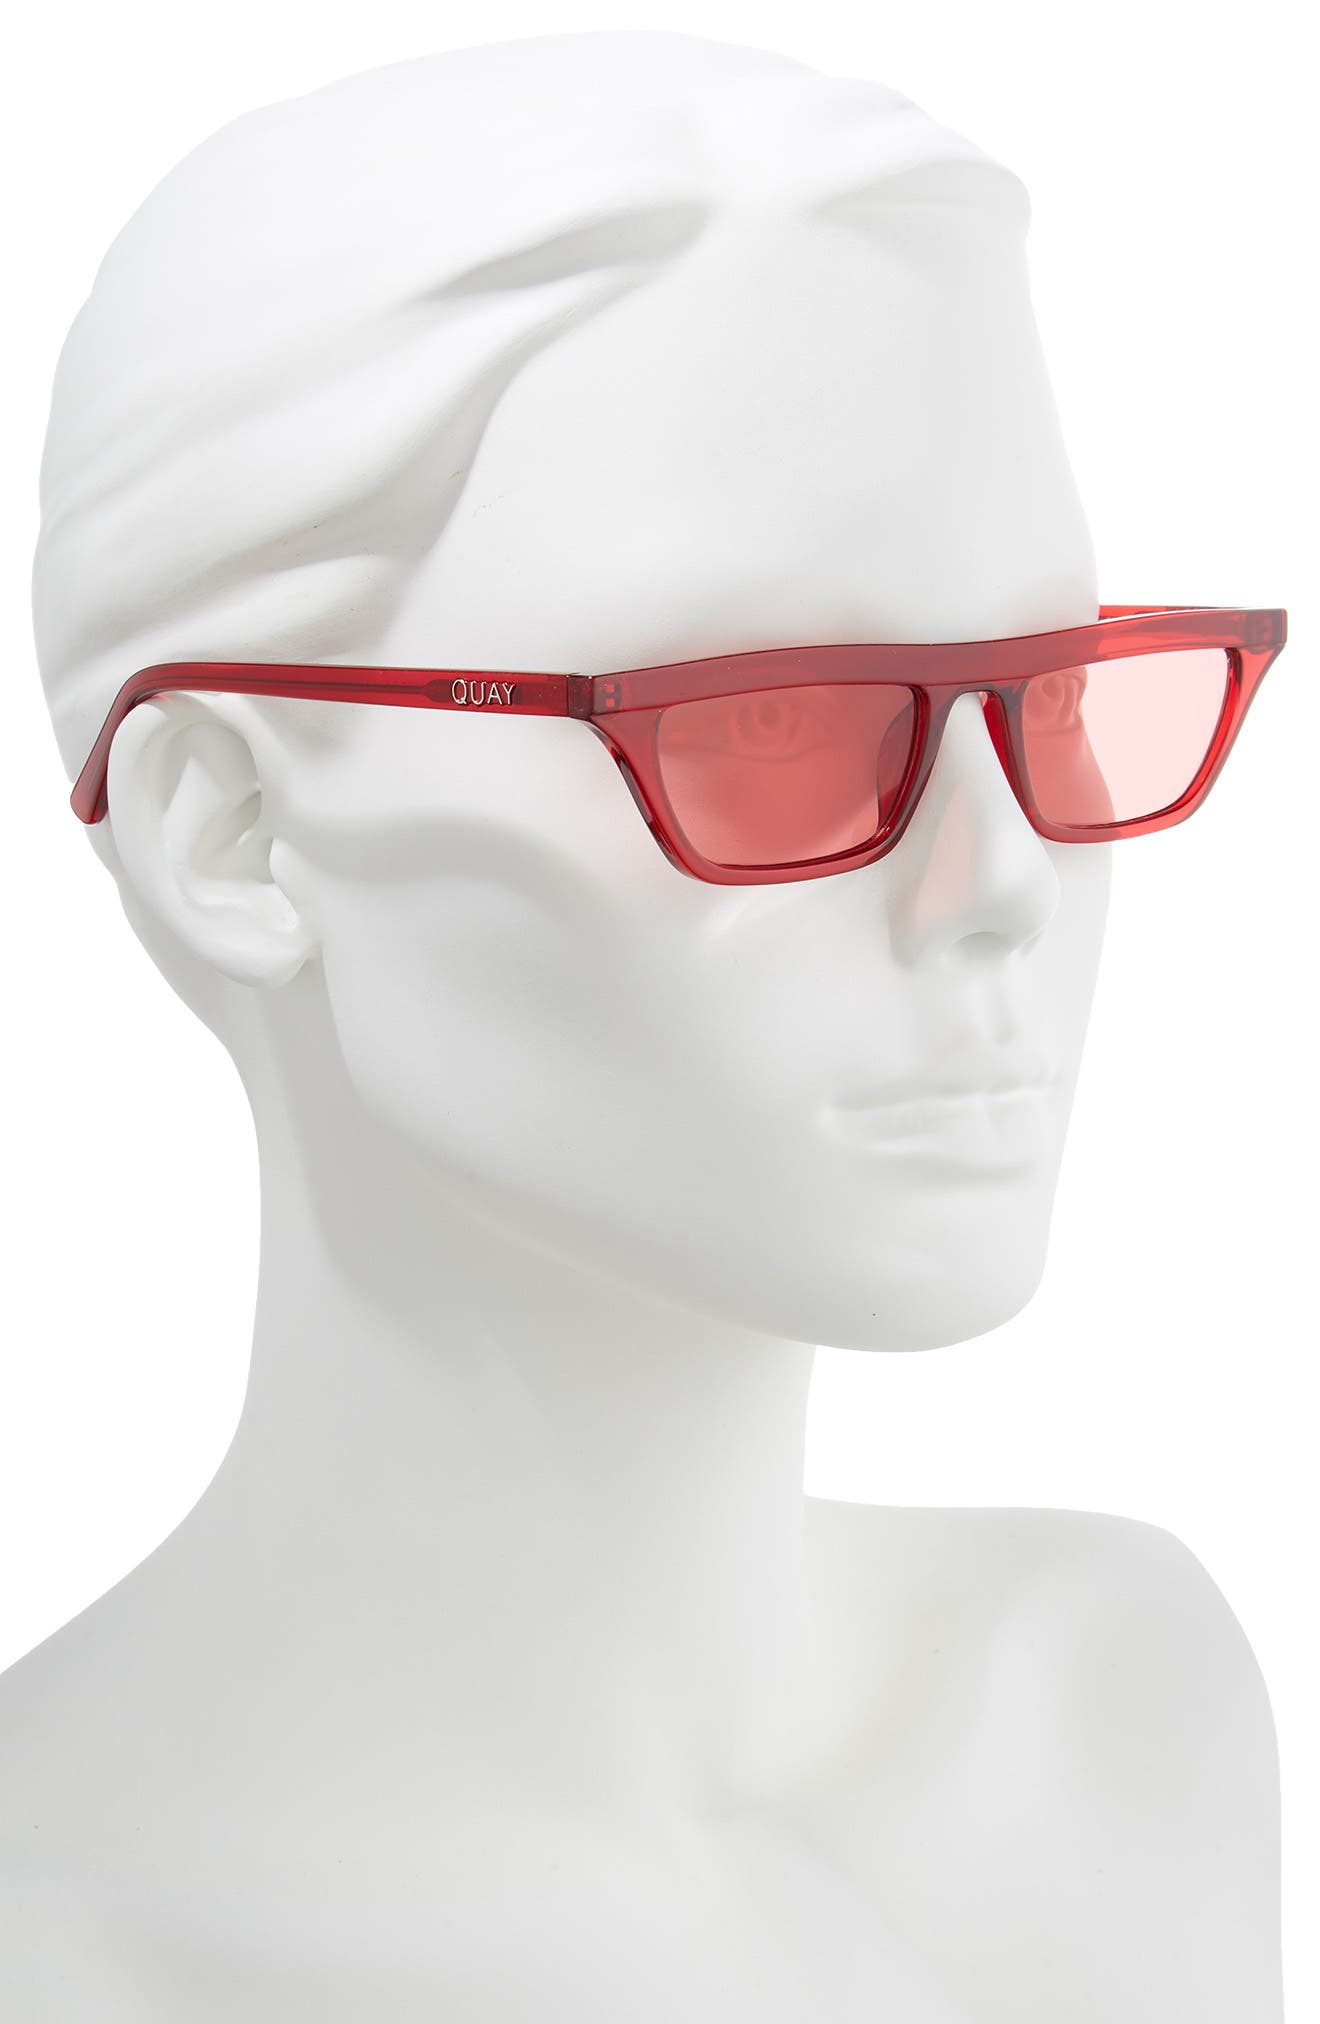 Finesse 52mm Sunglasses,                             Alternate thumbnail 2, color,                             600